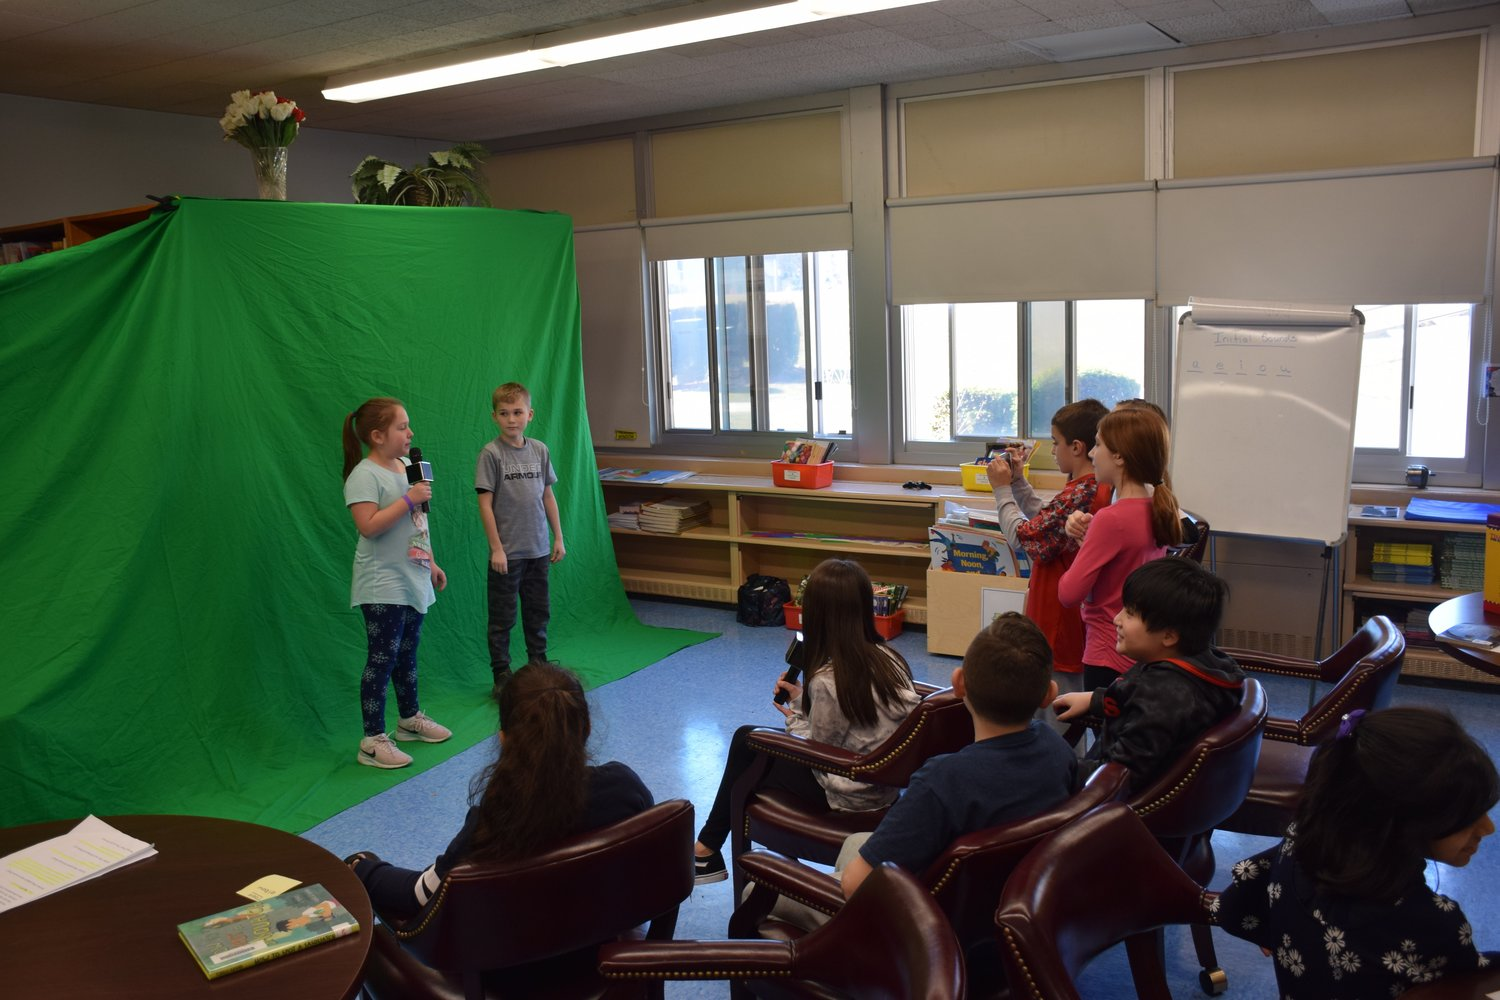 By using a green screen, an iPhone and microphones, fourth-grade students at Parkway Elementary School recorded a news broadcast as part of lesson on natural disasters on Feb. 4.